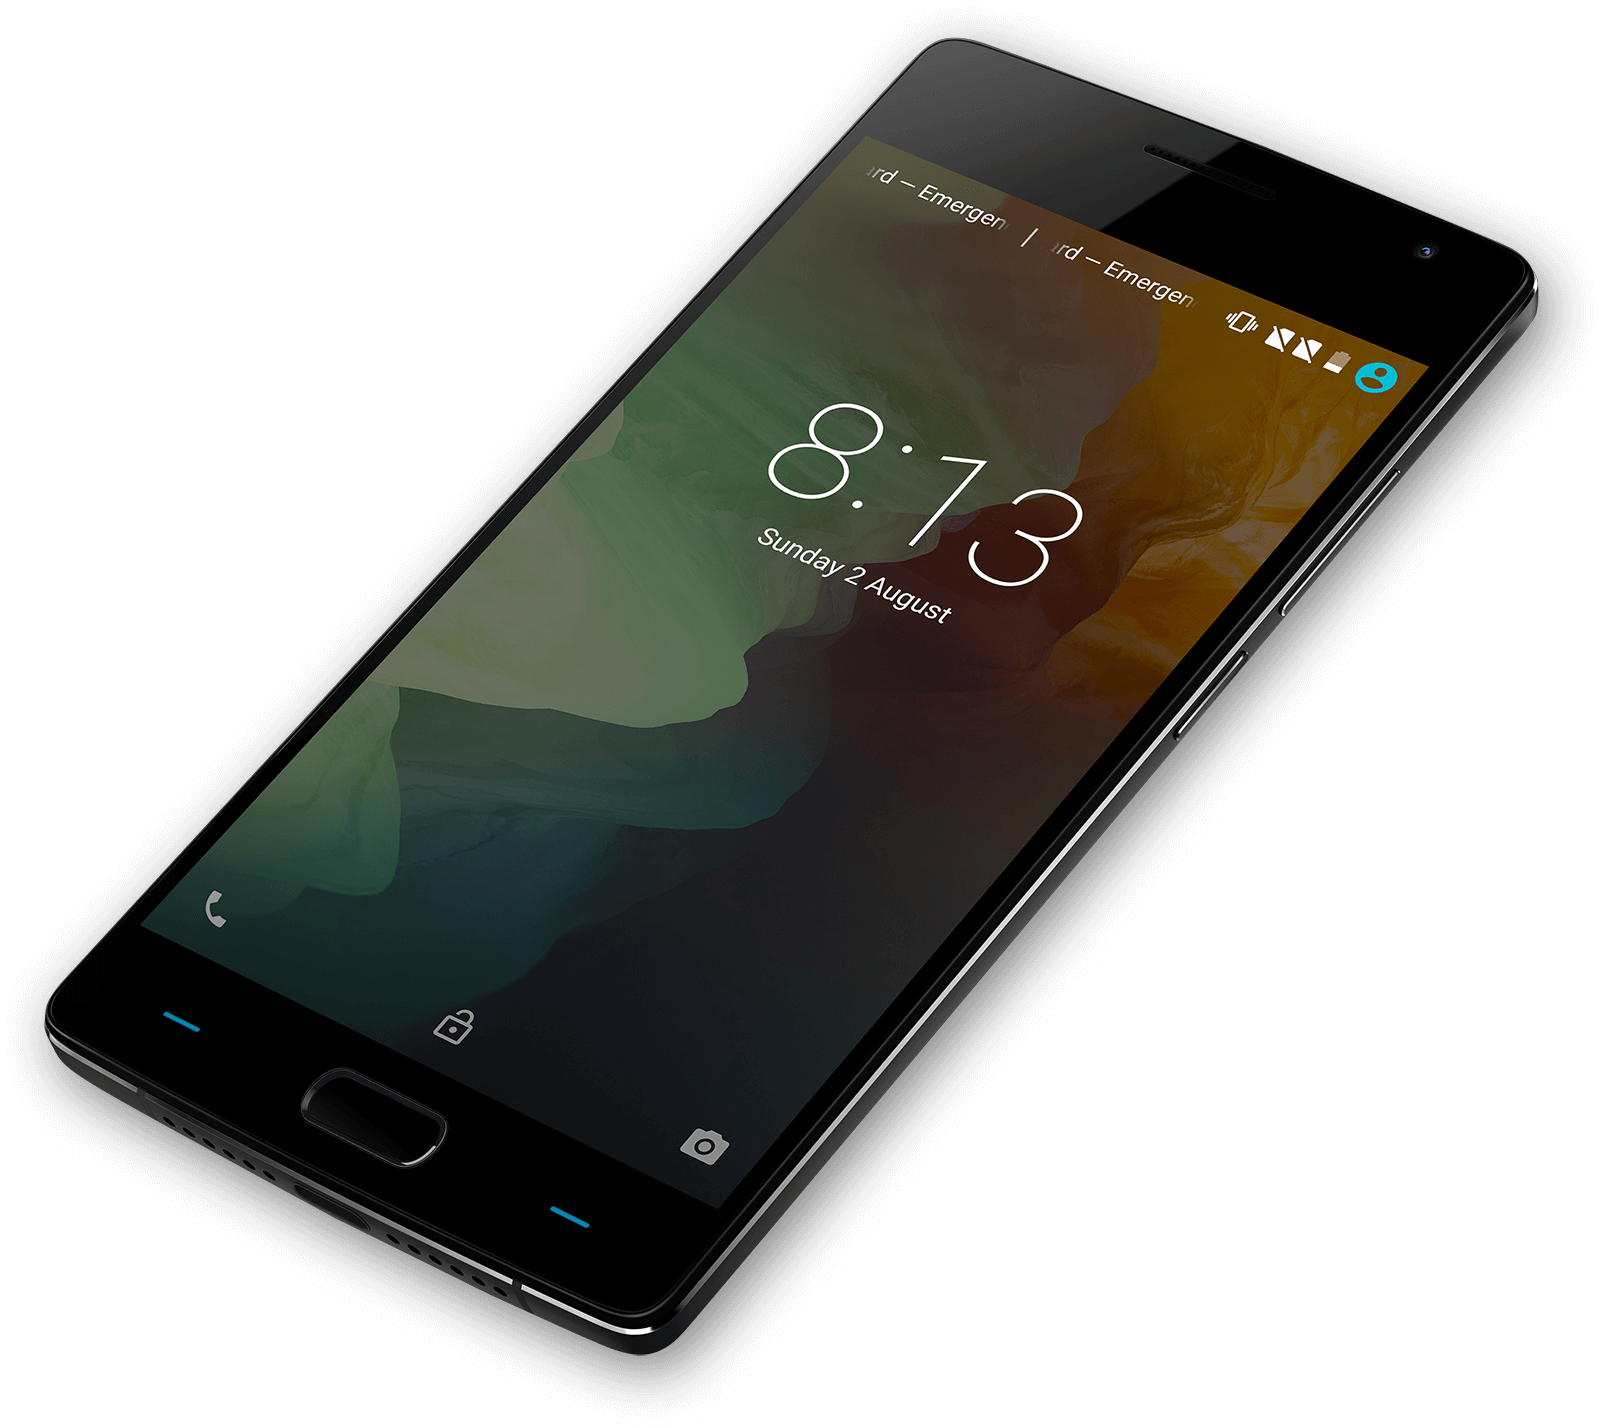 OnePlus 2 - Technology - OnePlus - OnePlus (France) Oneplus